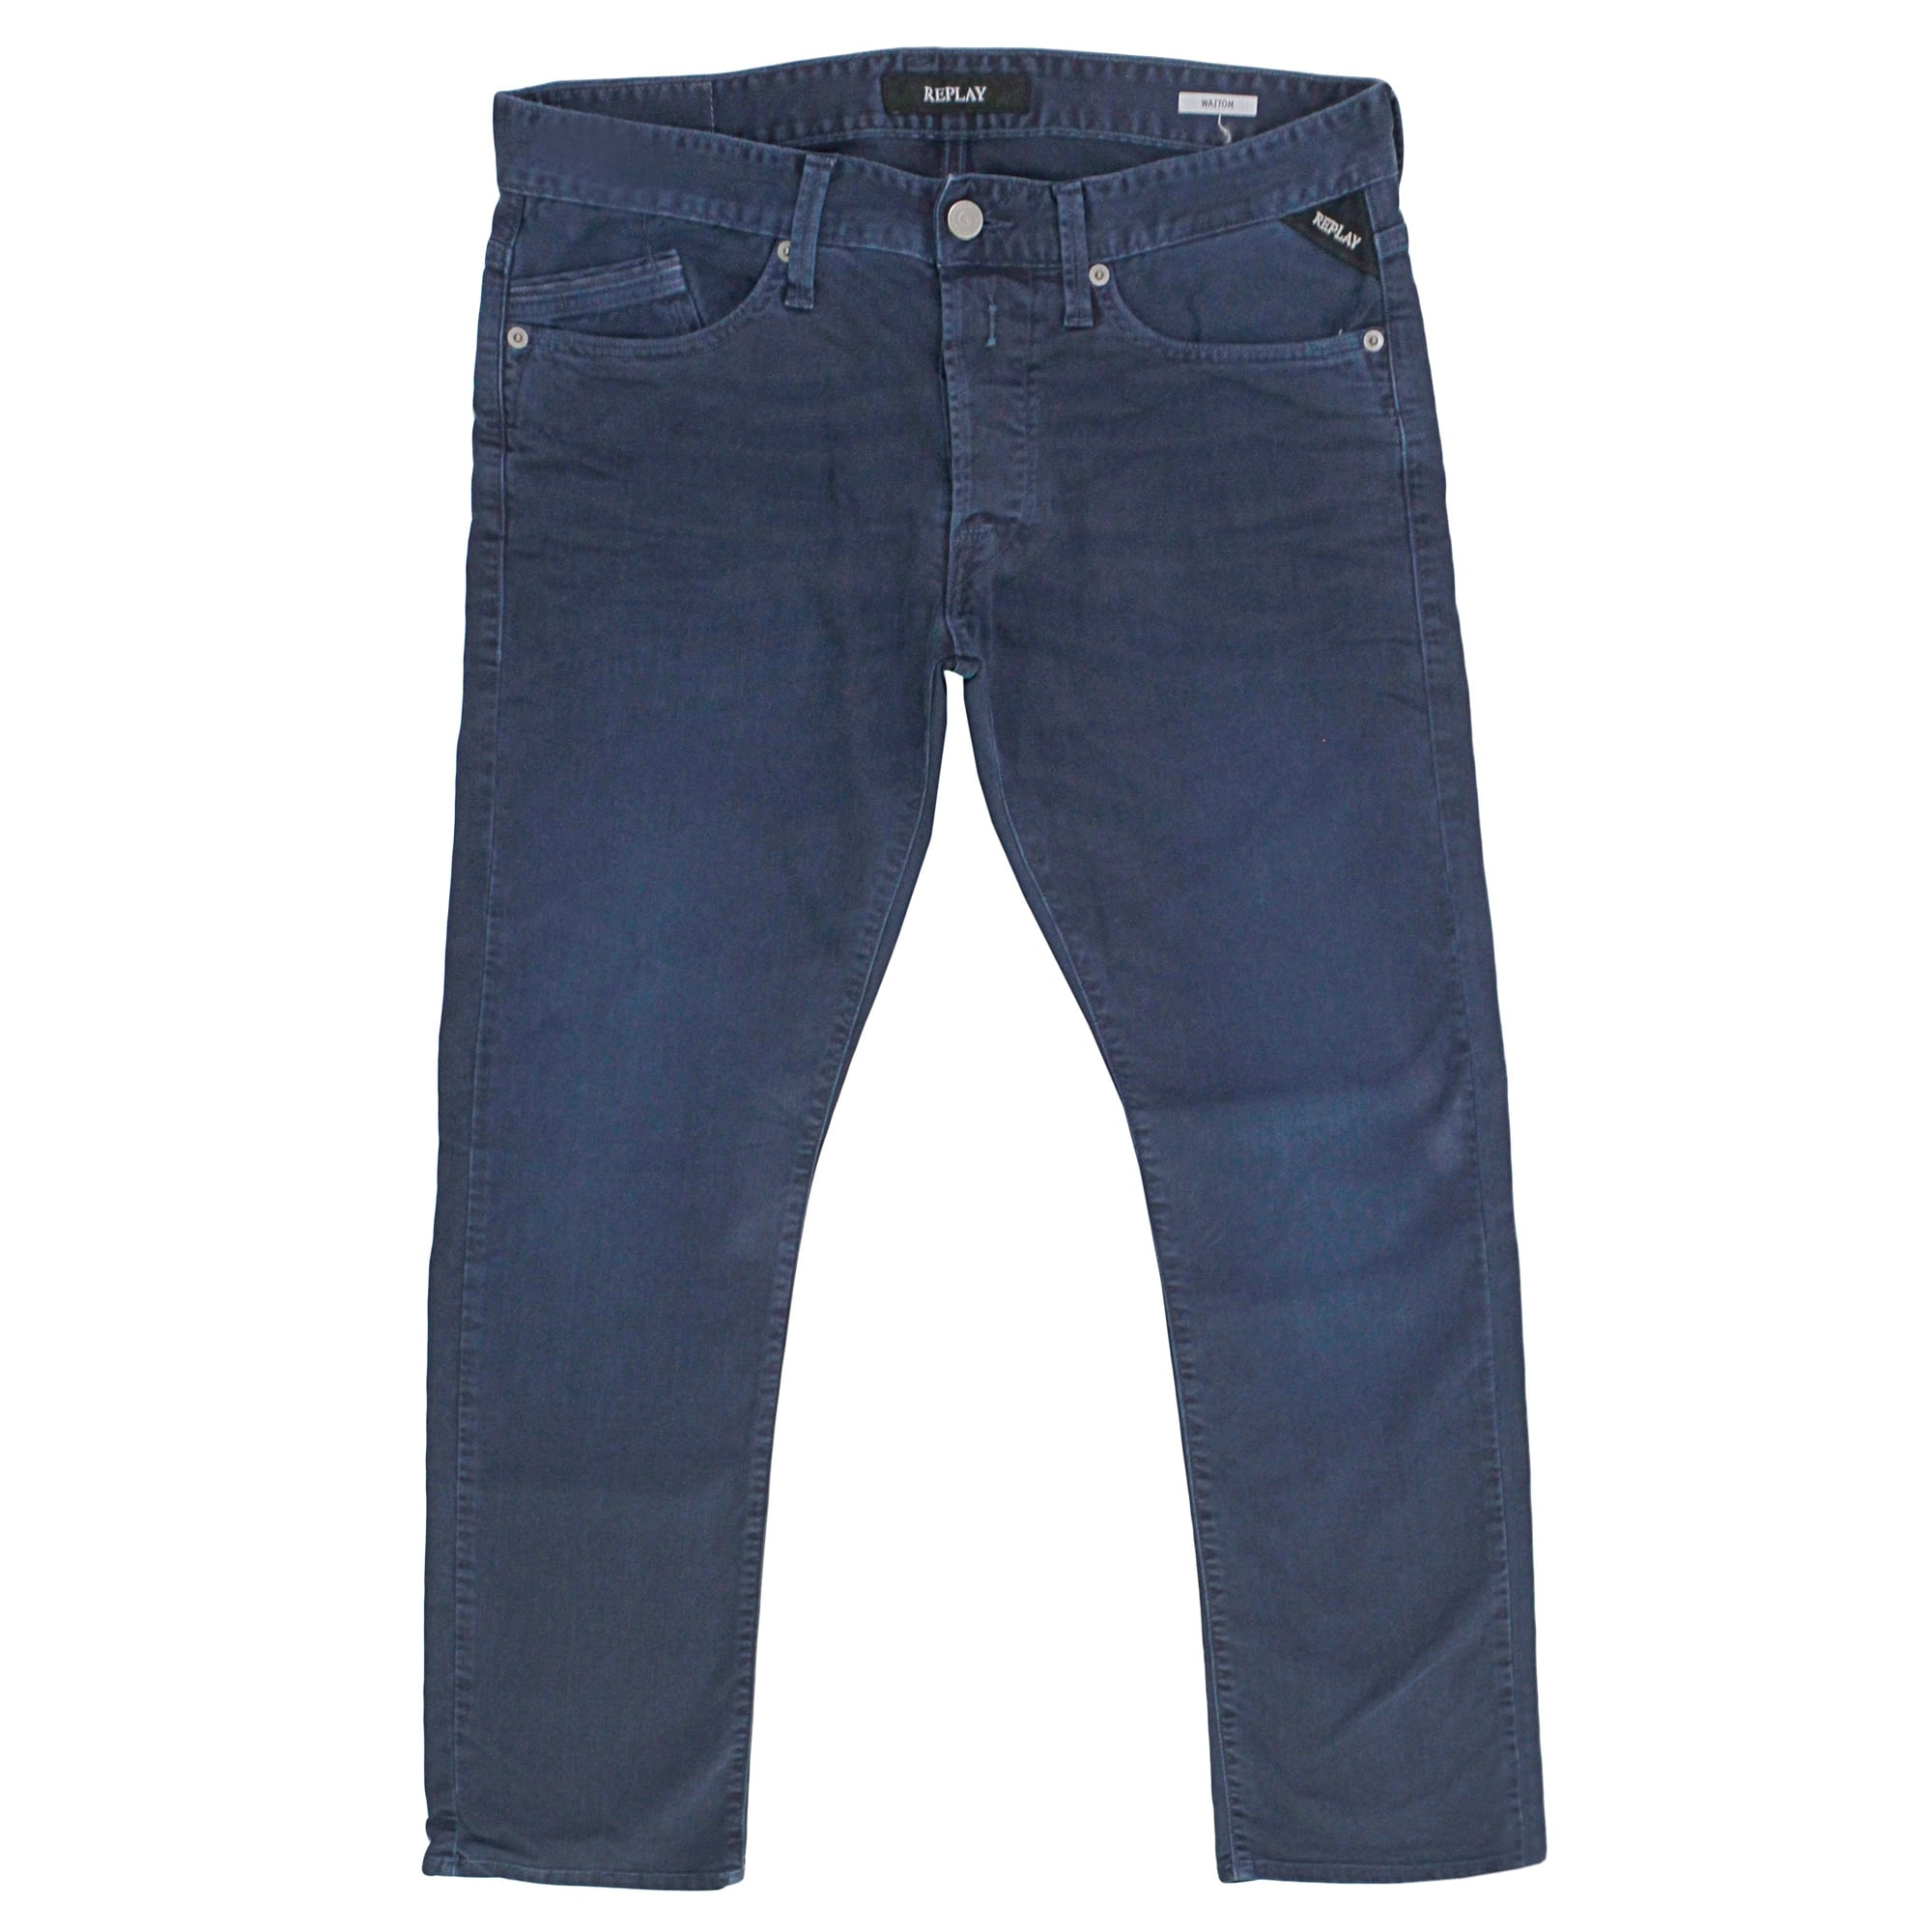 replay jeans online store waitom navy jeans. Black Bedroom Furniture Sets. Home Design Ideas